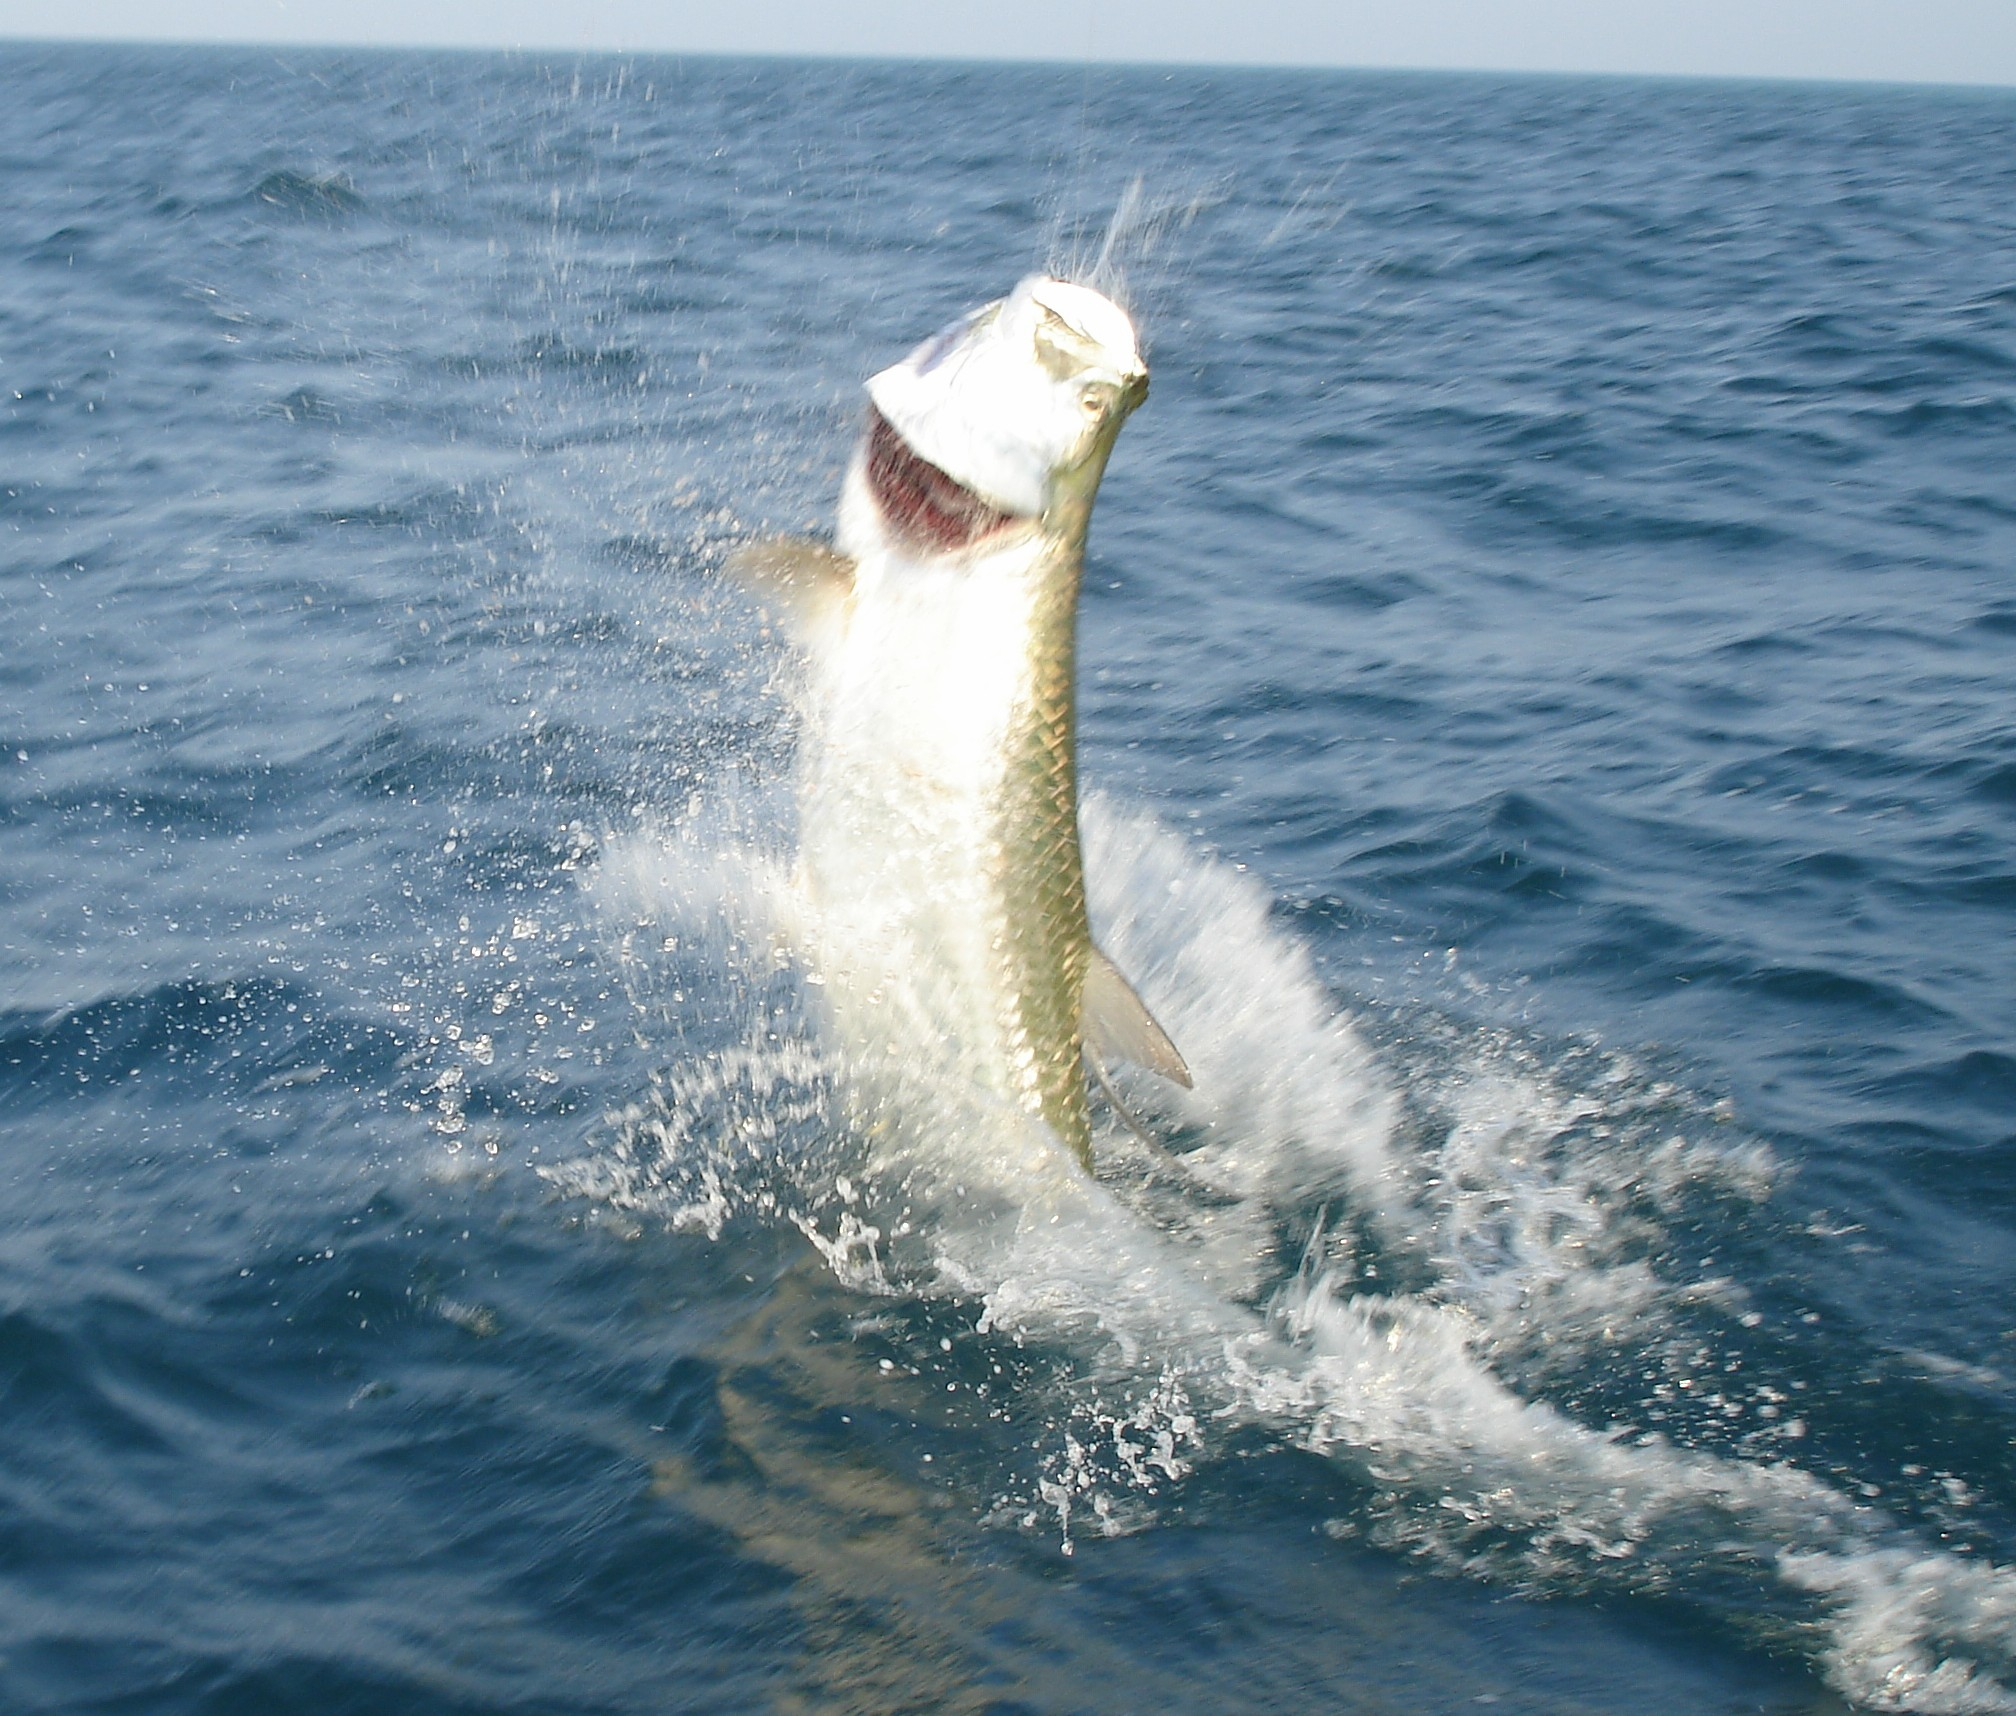 Of a hooked tarpon jumping while fishing off the beach ofboca grande